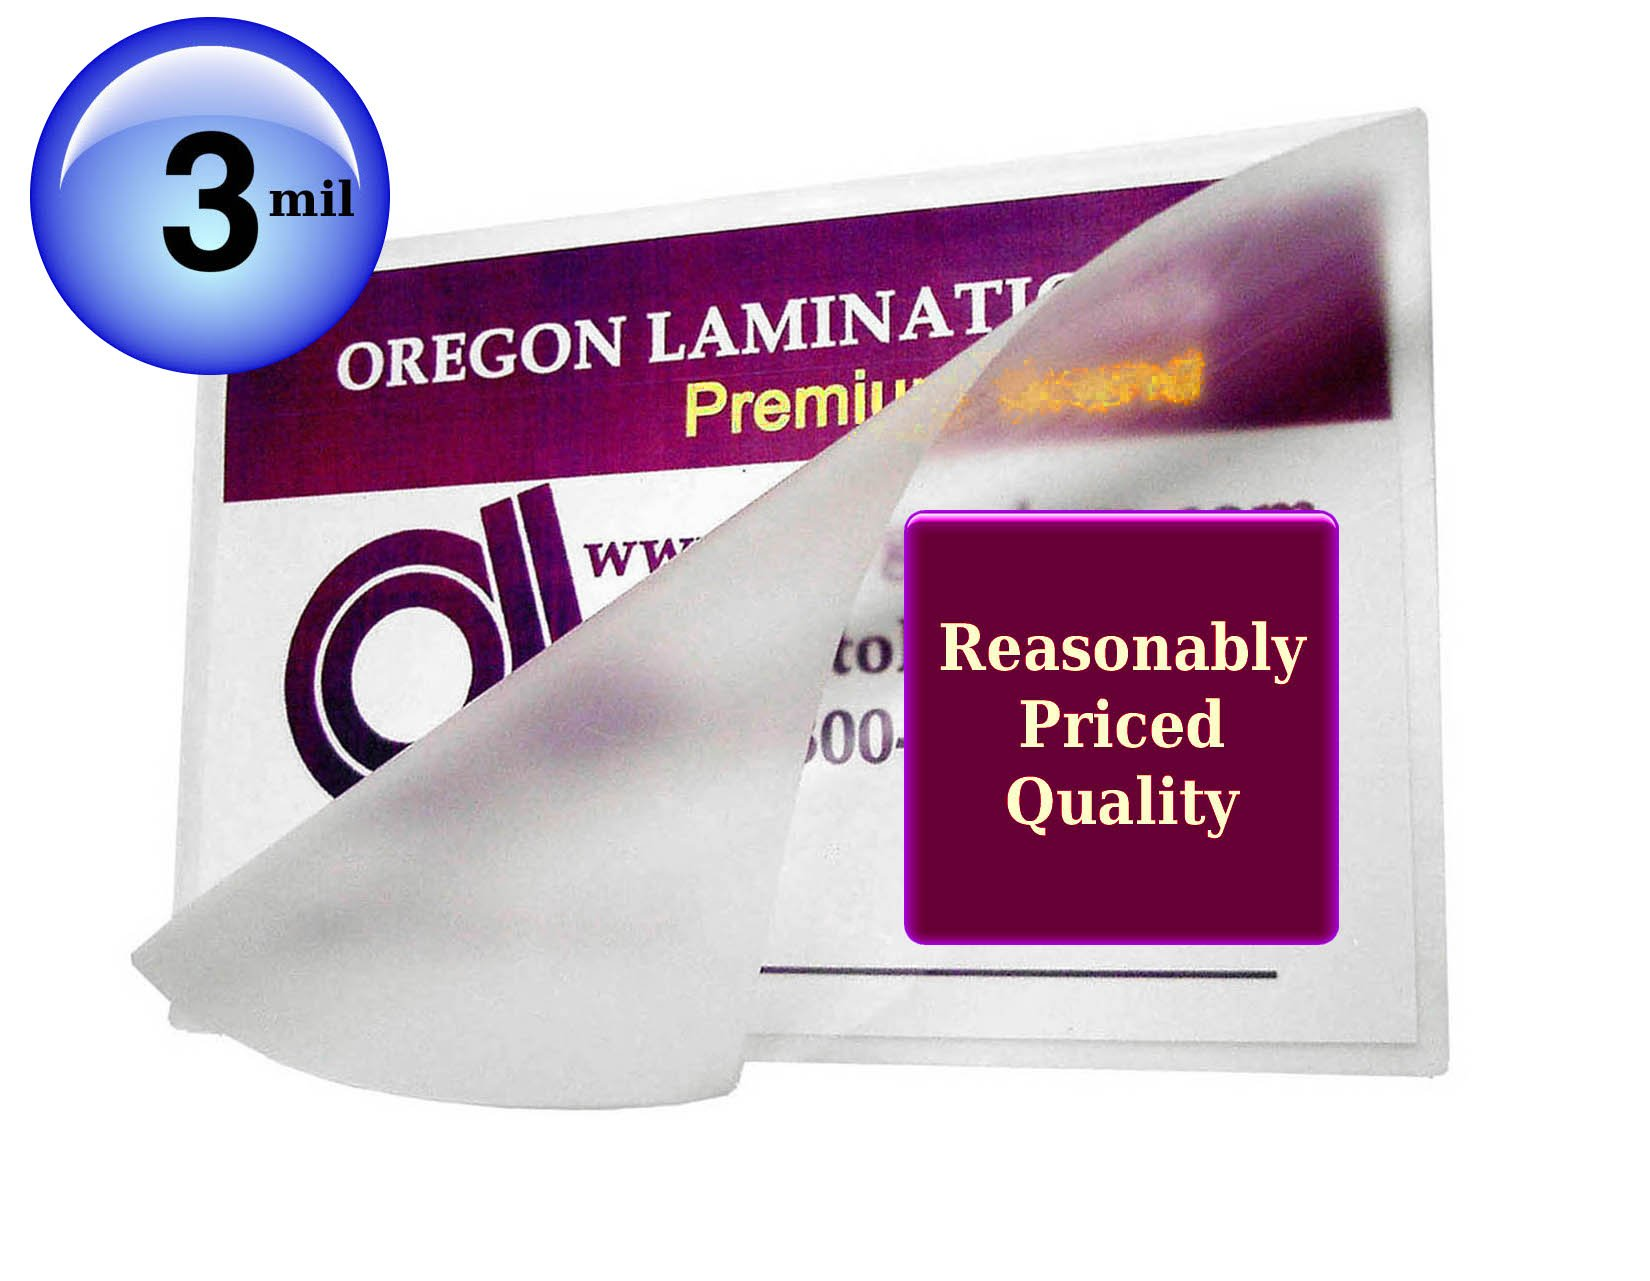 Oregon Laminations Premium 3 Mil Letter size Hot Laminating Pouches 9 x 11-1/2 (Pack of 1000) Clear